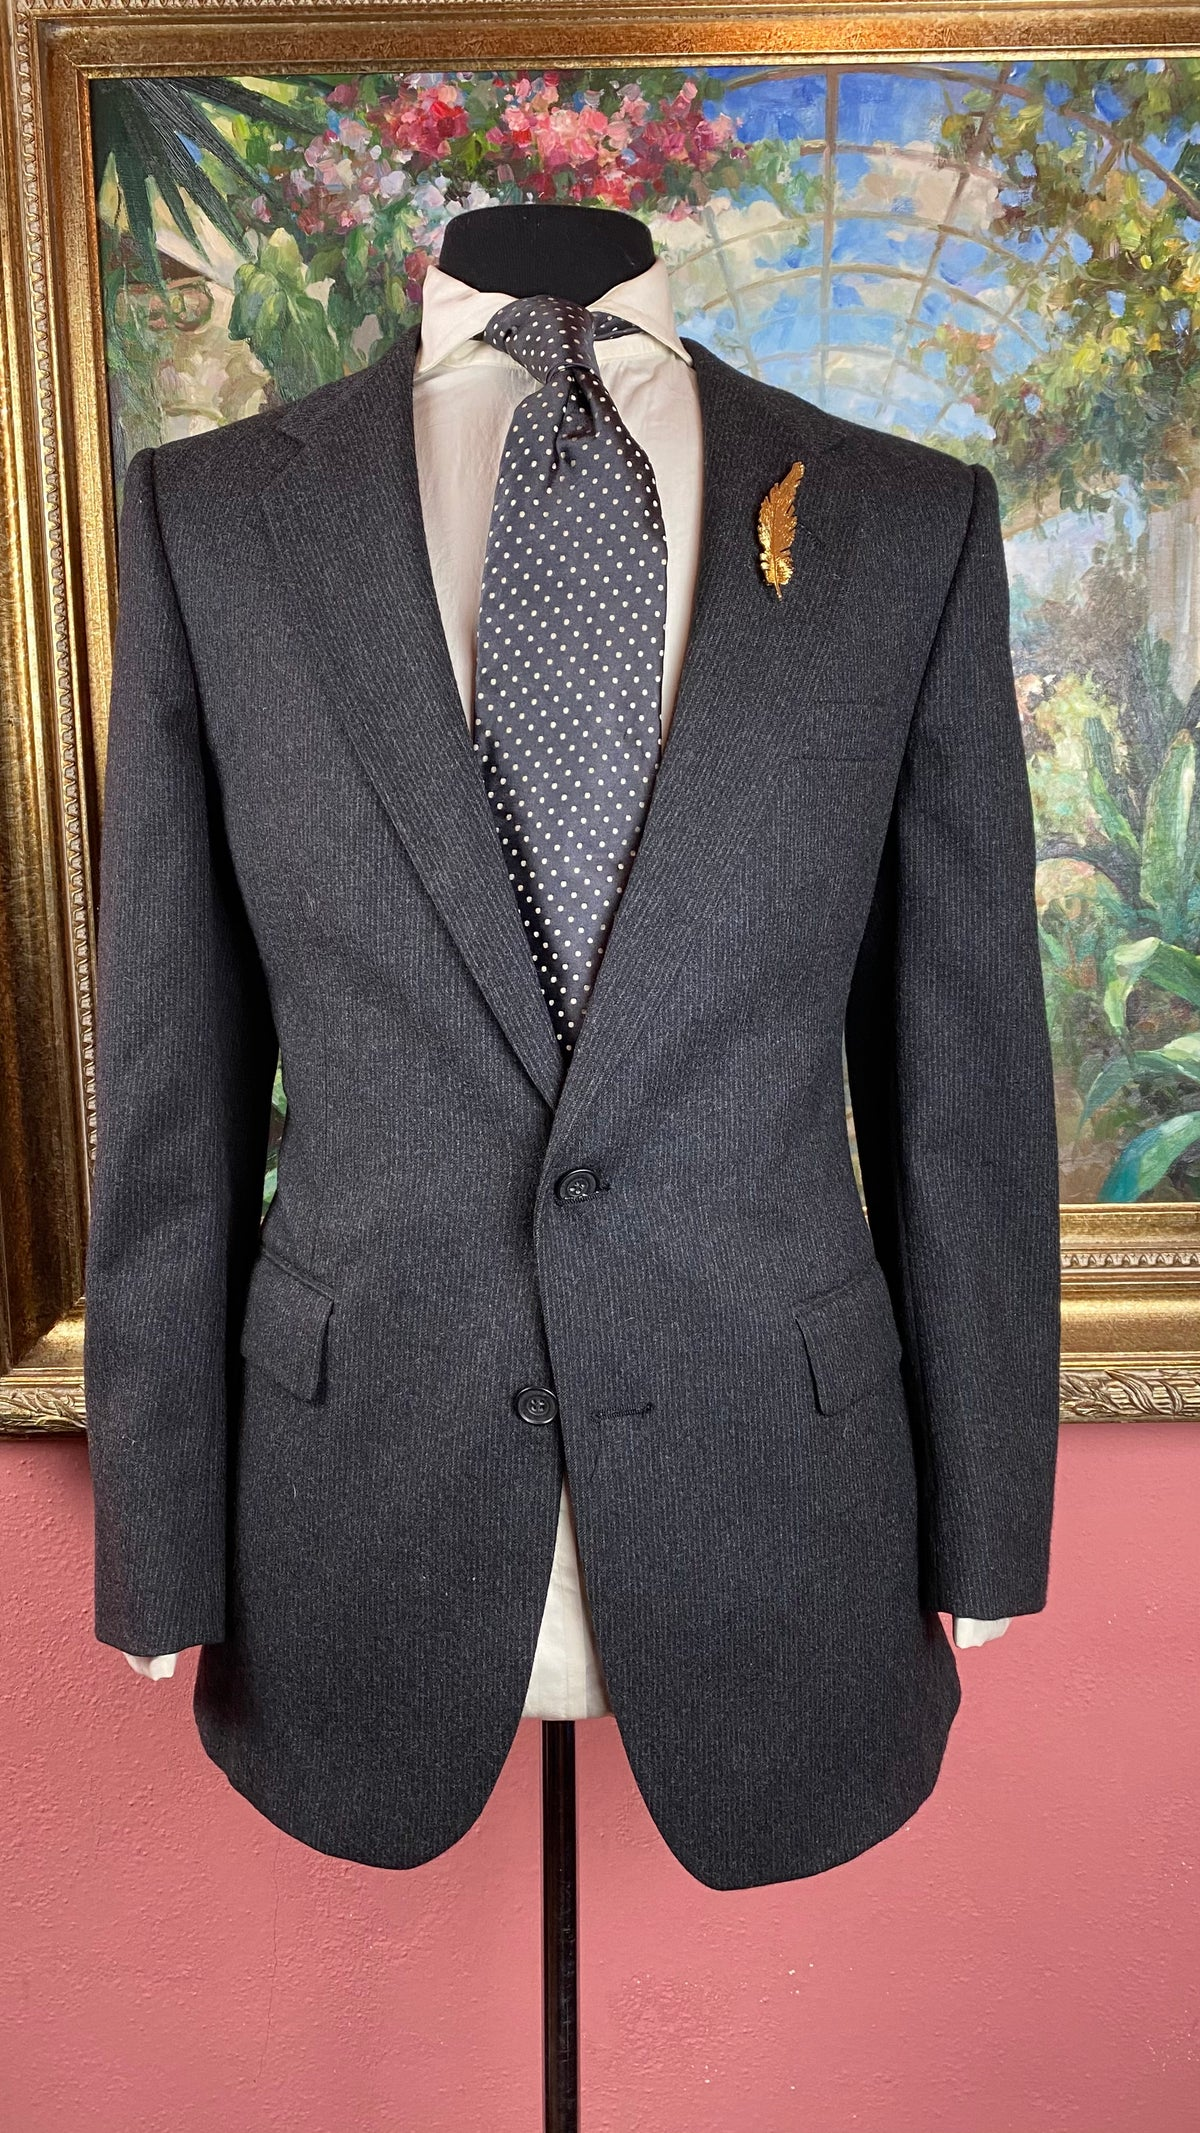 Image of VTG Balmain Suit